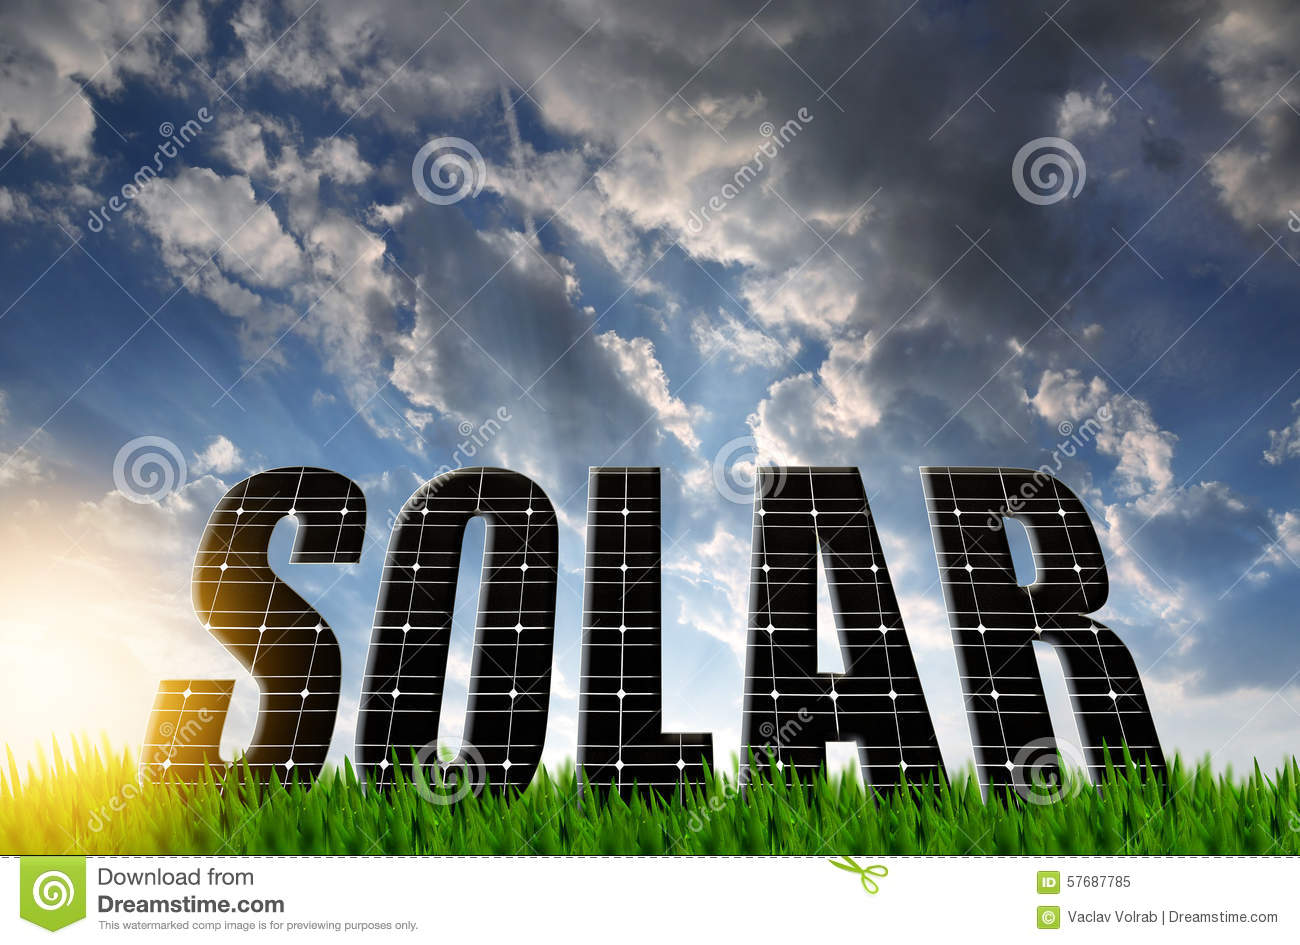 Solar Panel Installation >> The Word Solar From Solar Energy Panels Stock Image - Image: 57687785